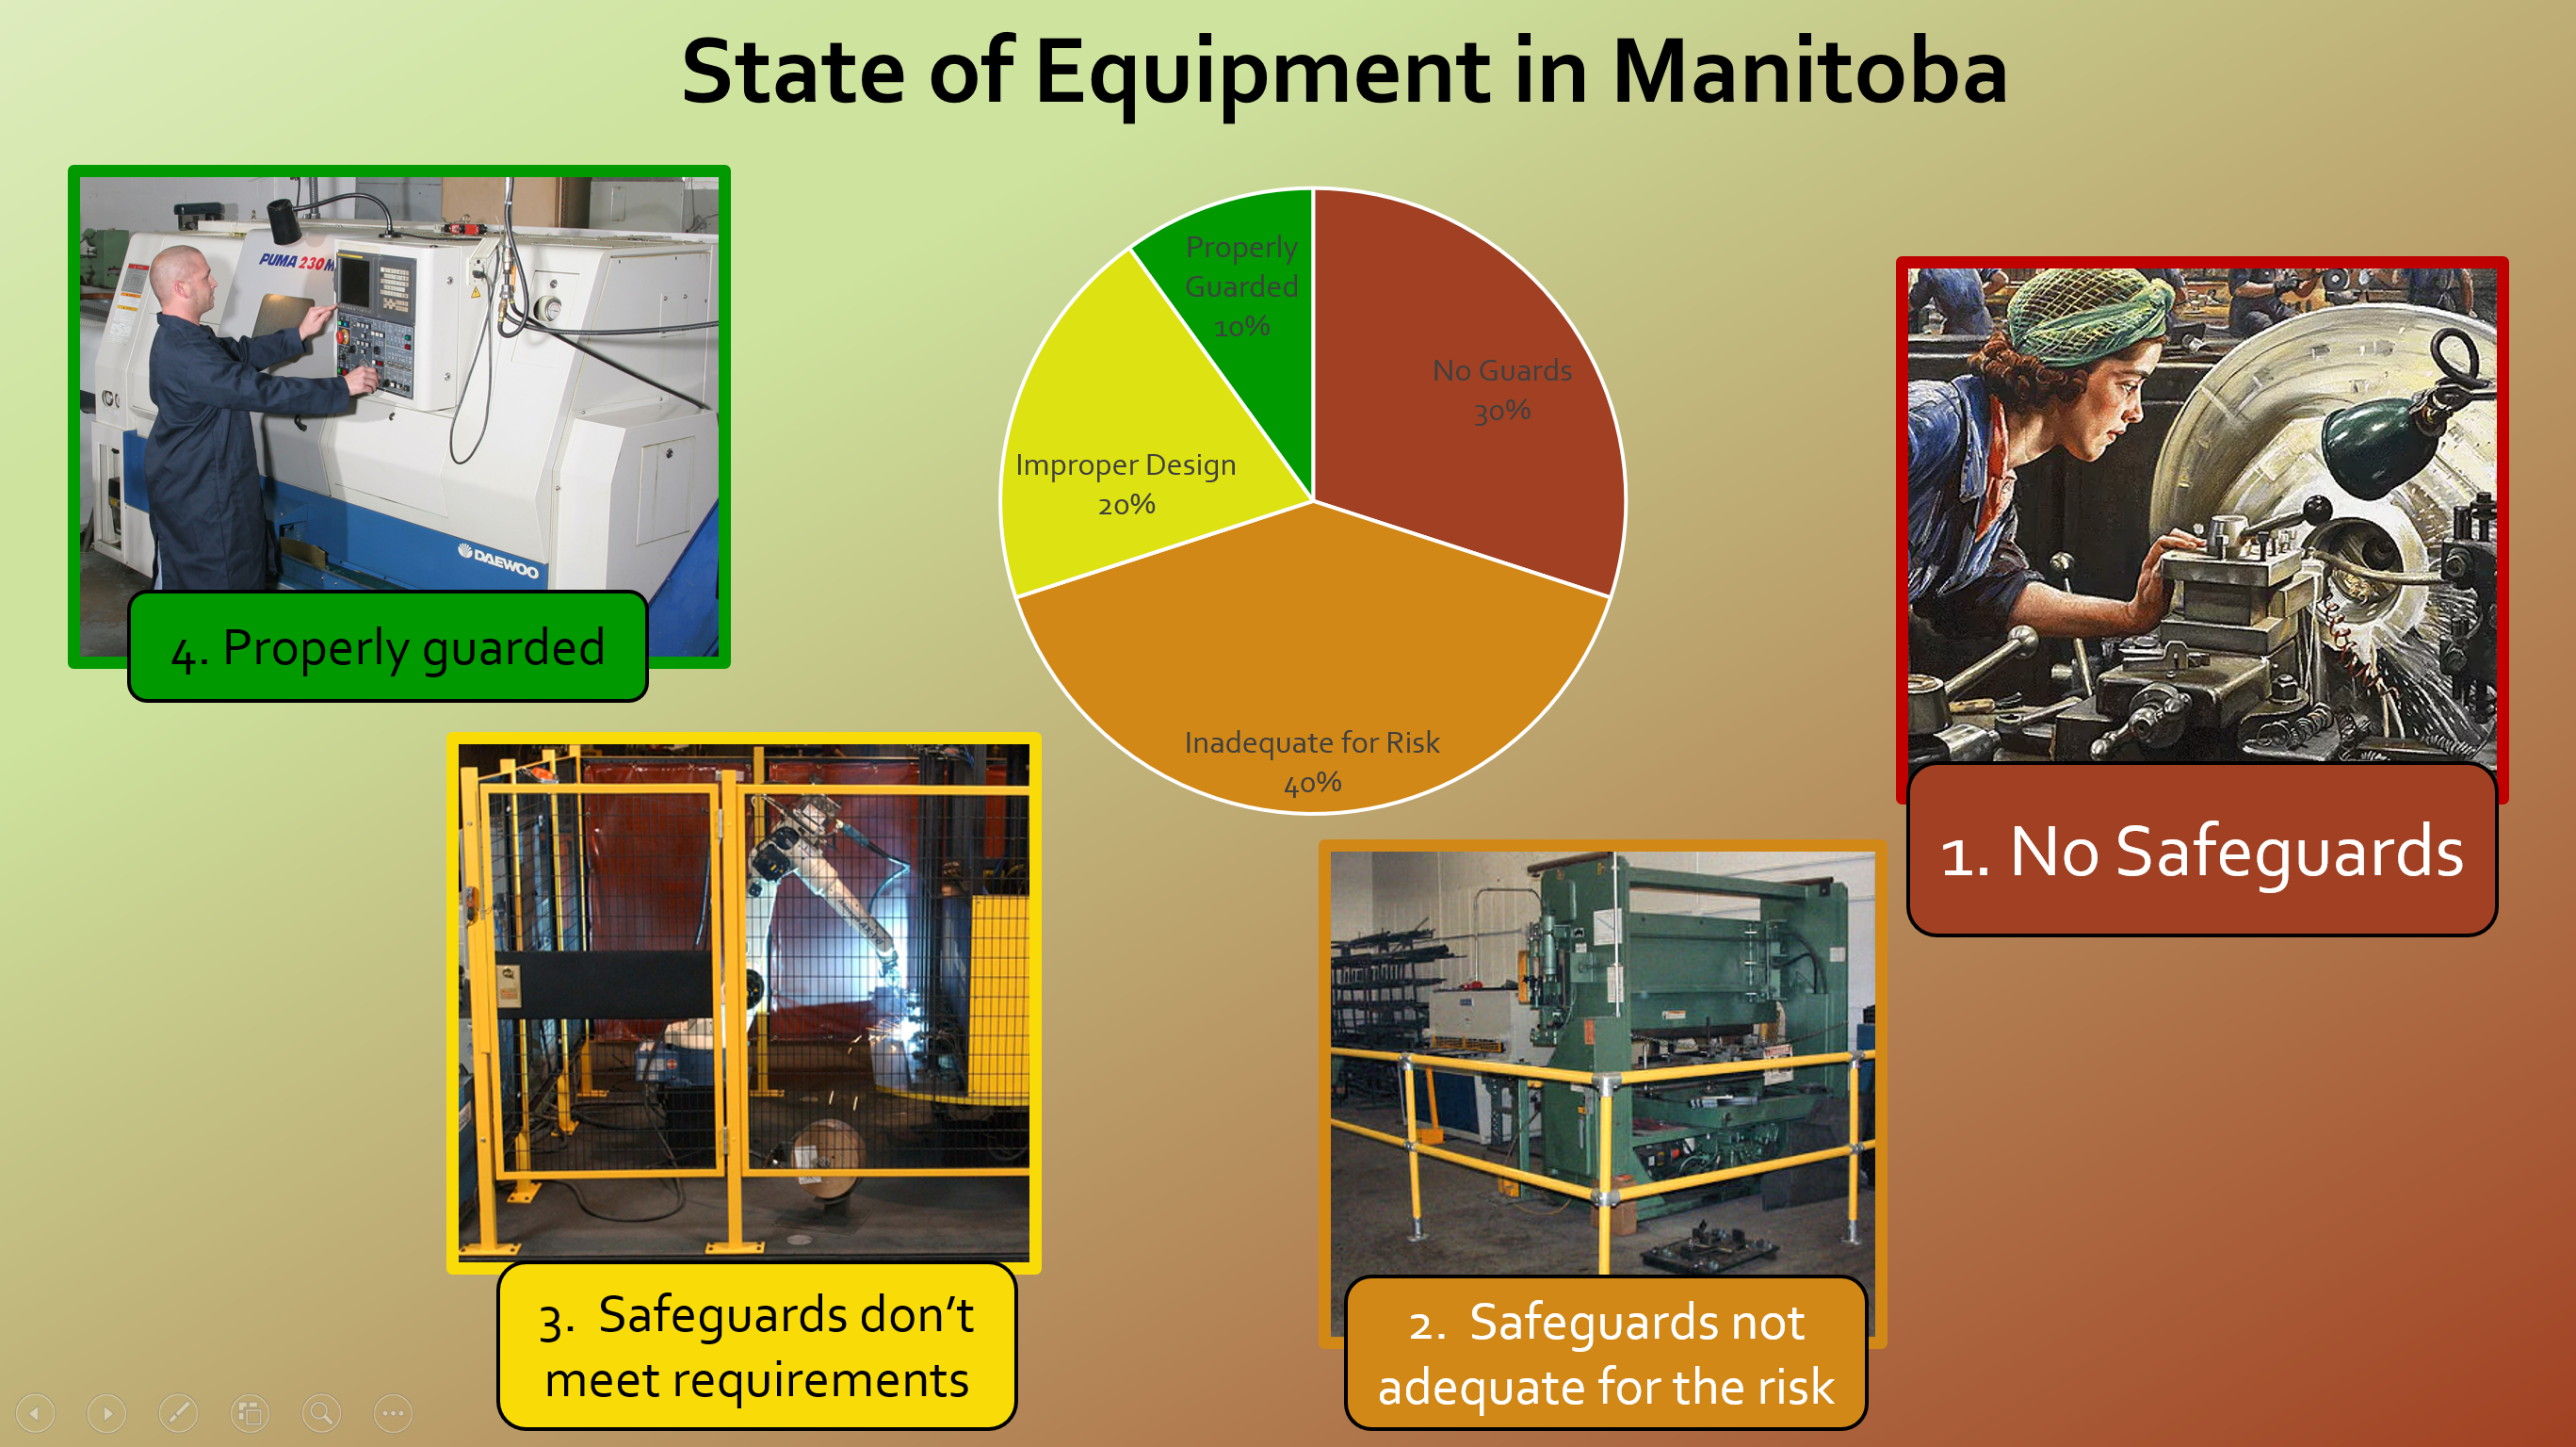 State of Equipment in Manitoba